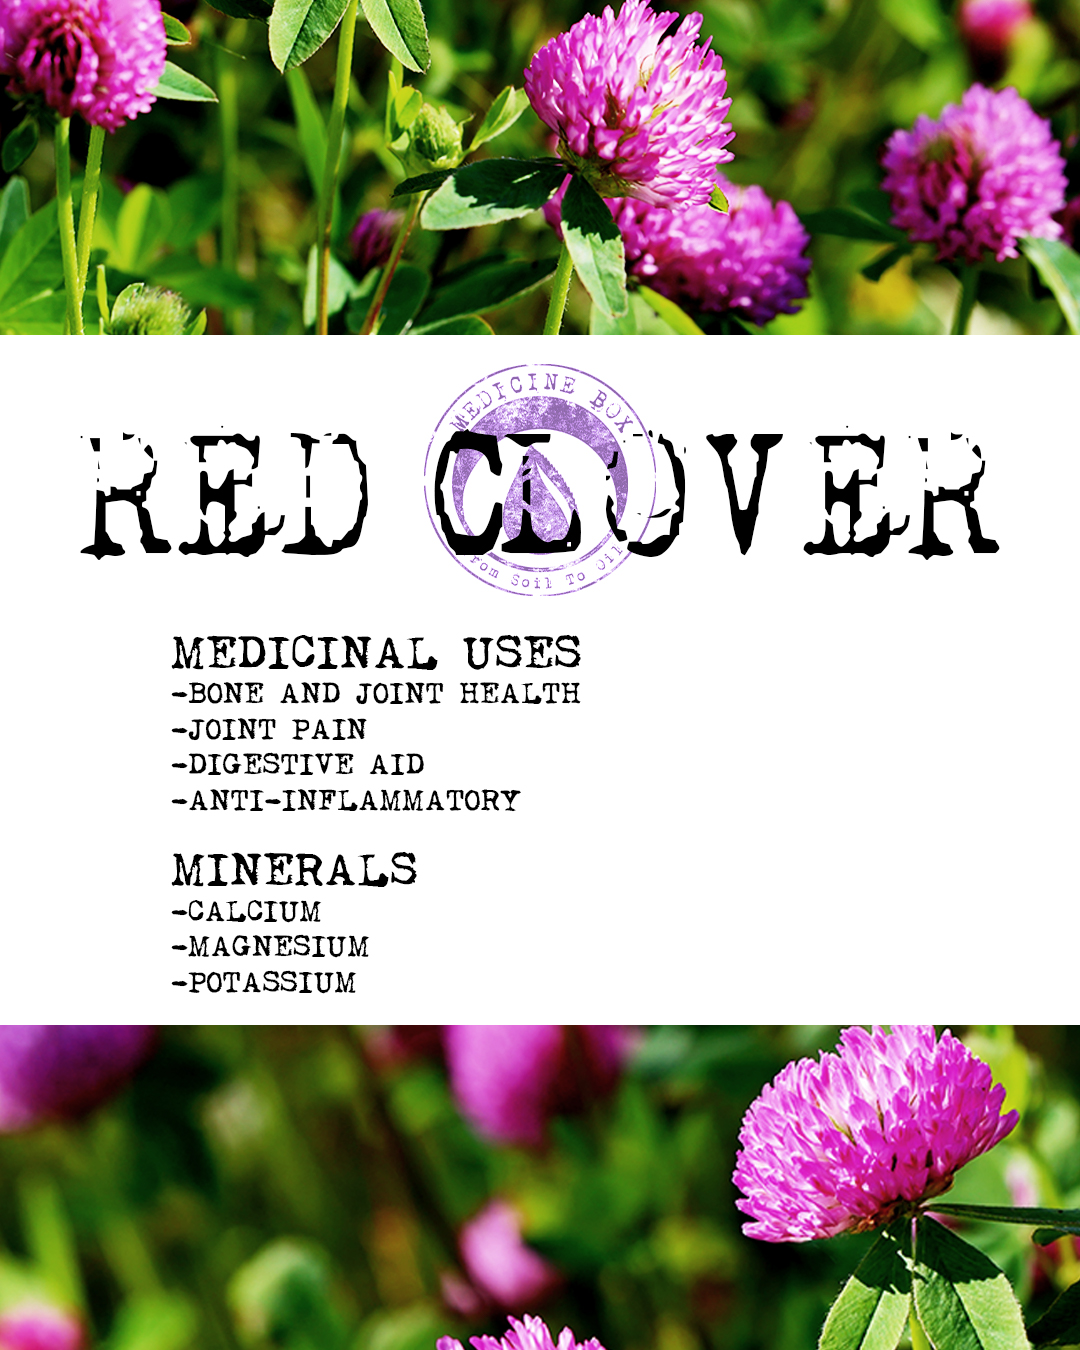 red clover herb spotlight from medicine box